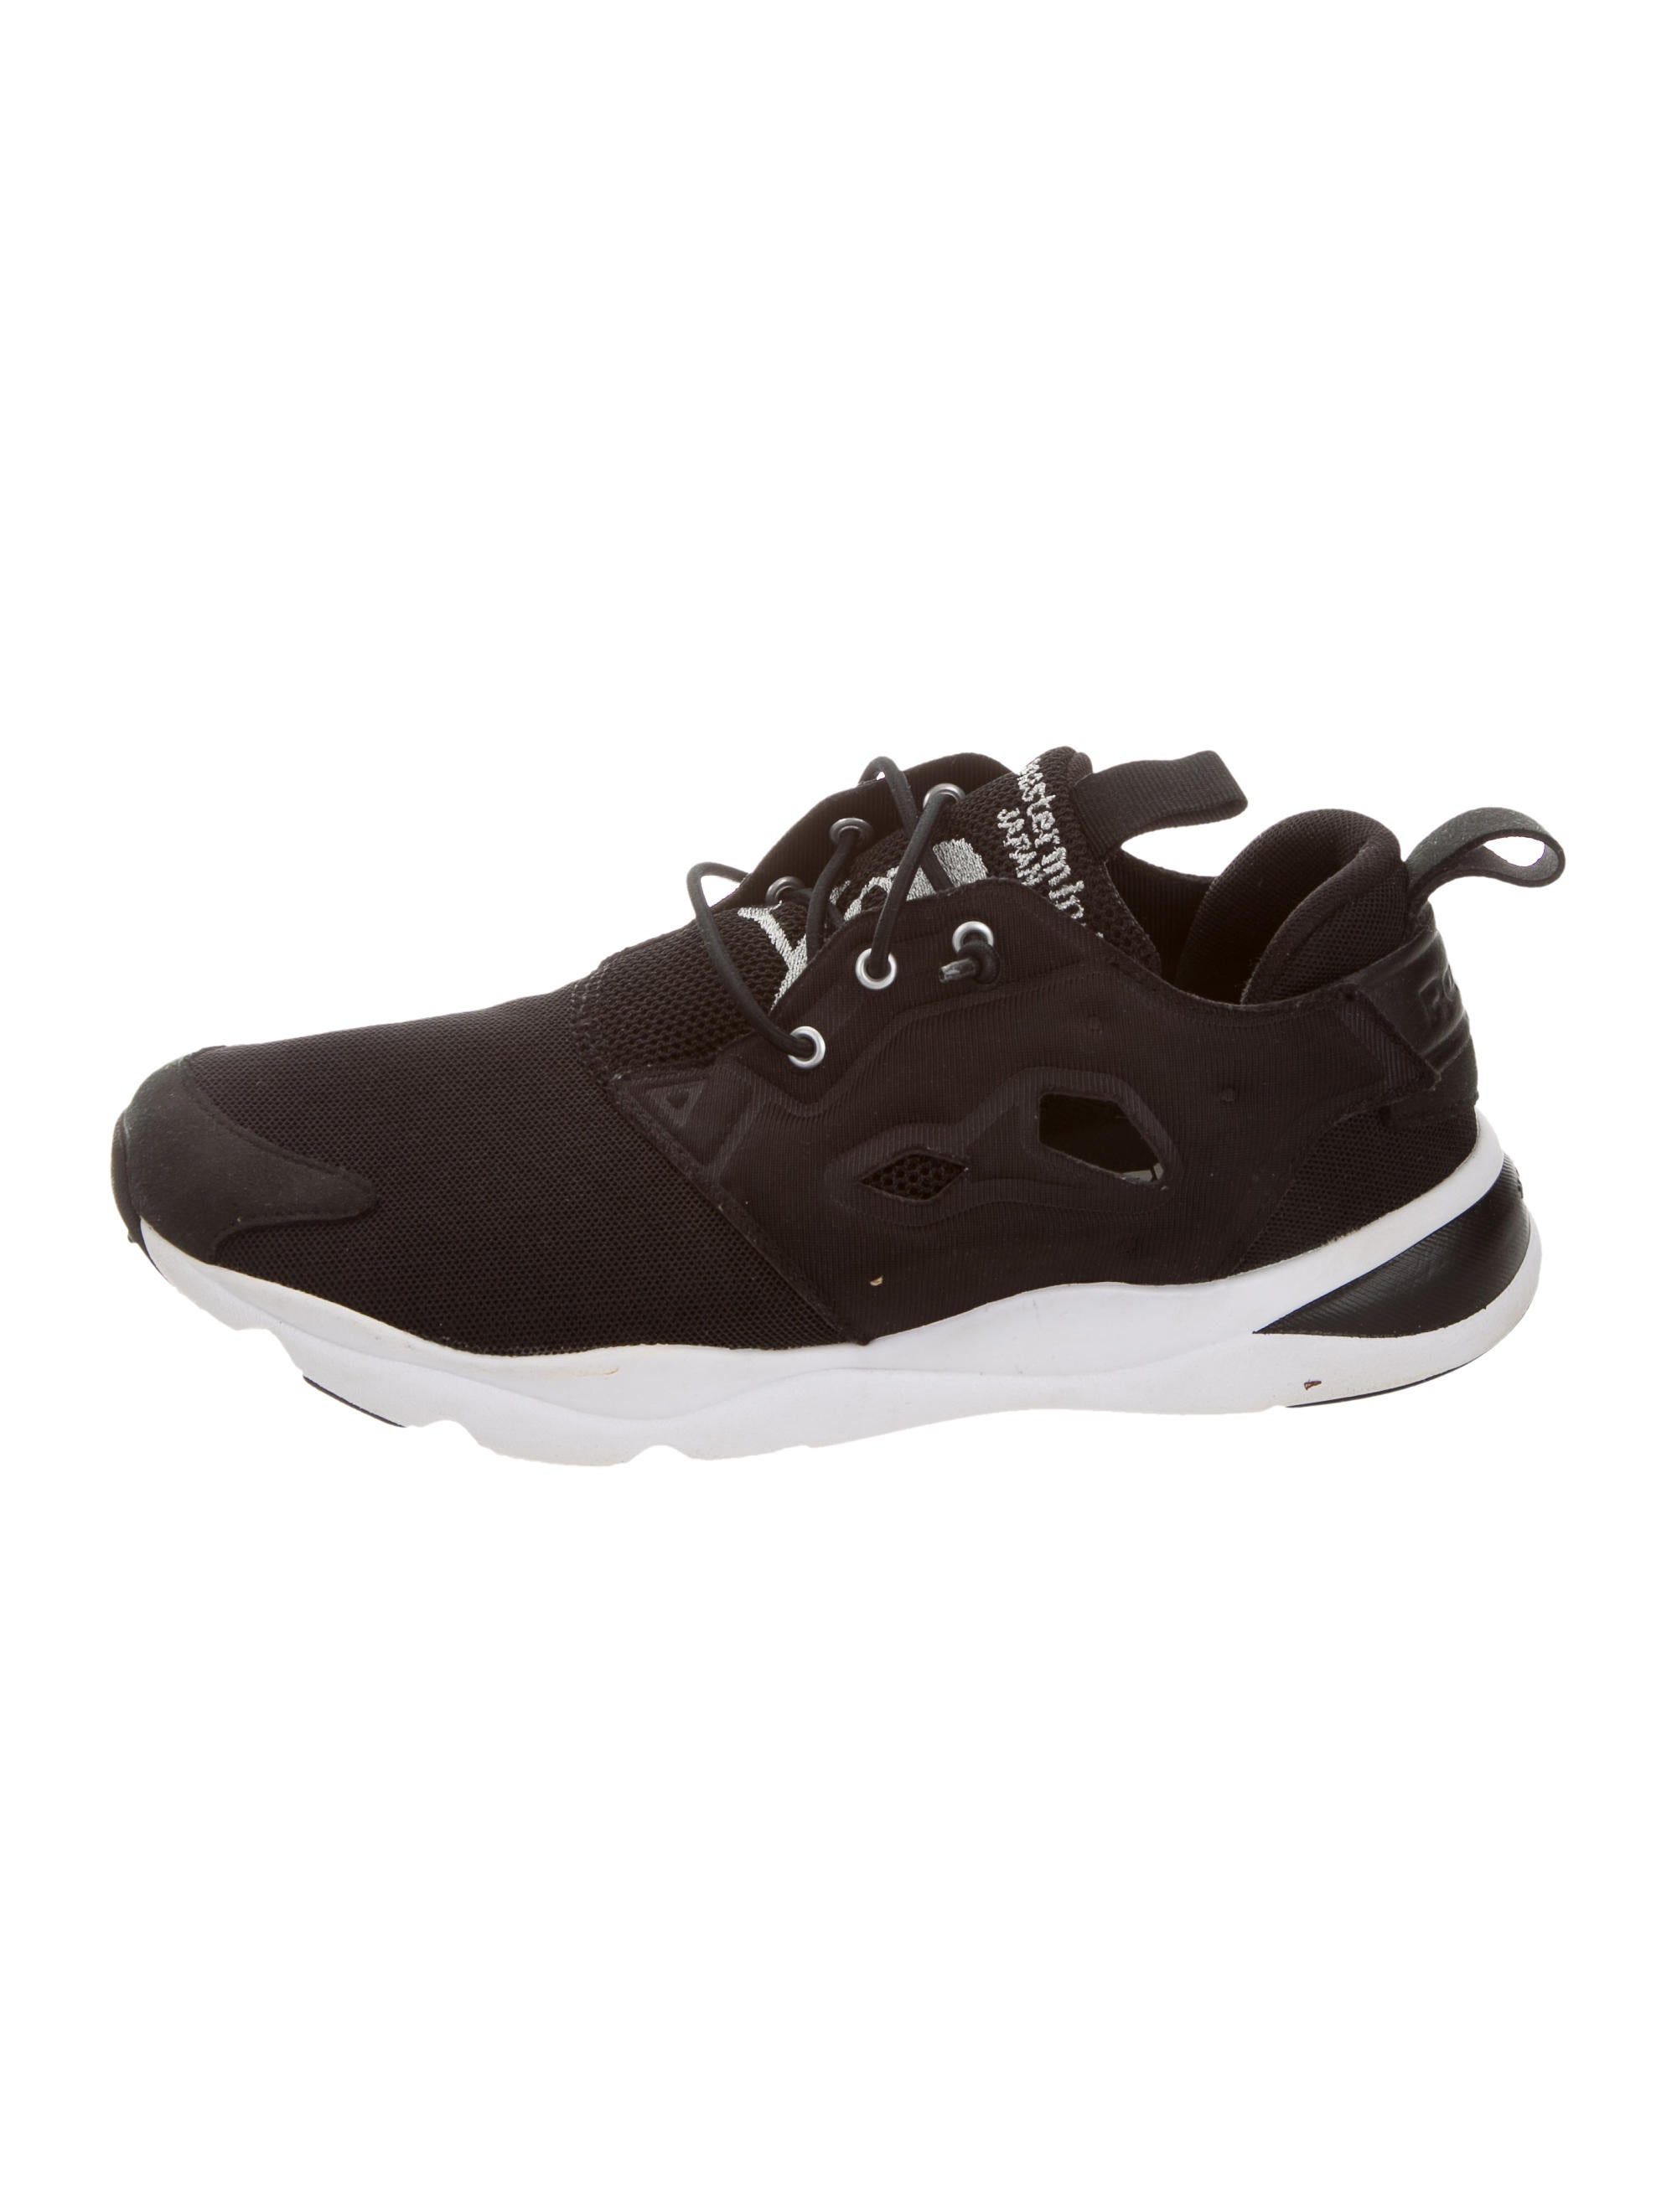 quality outlet store factory outlet online Reebok x Mastermind Low-Top Running Sneakers amazon footaction best store to get cheap online fXK5E7R2Yl